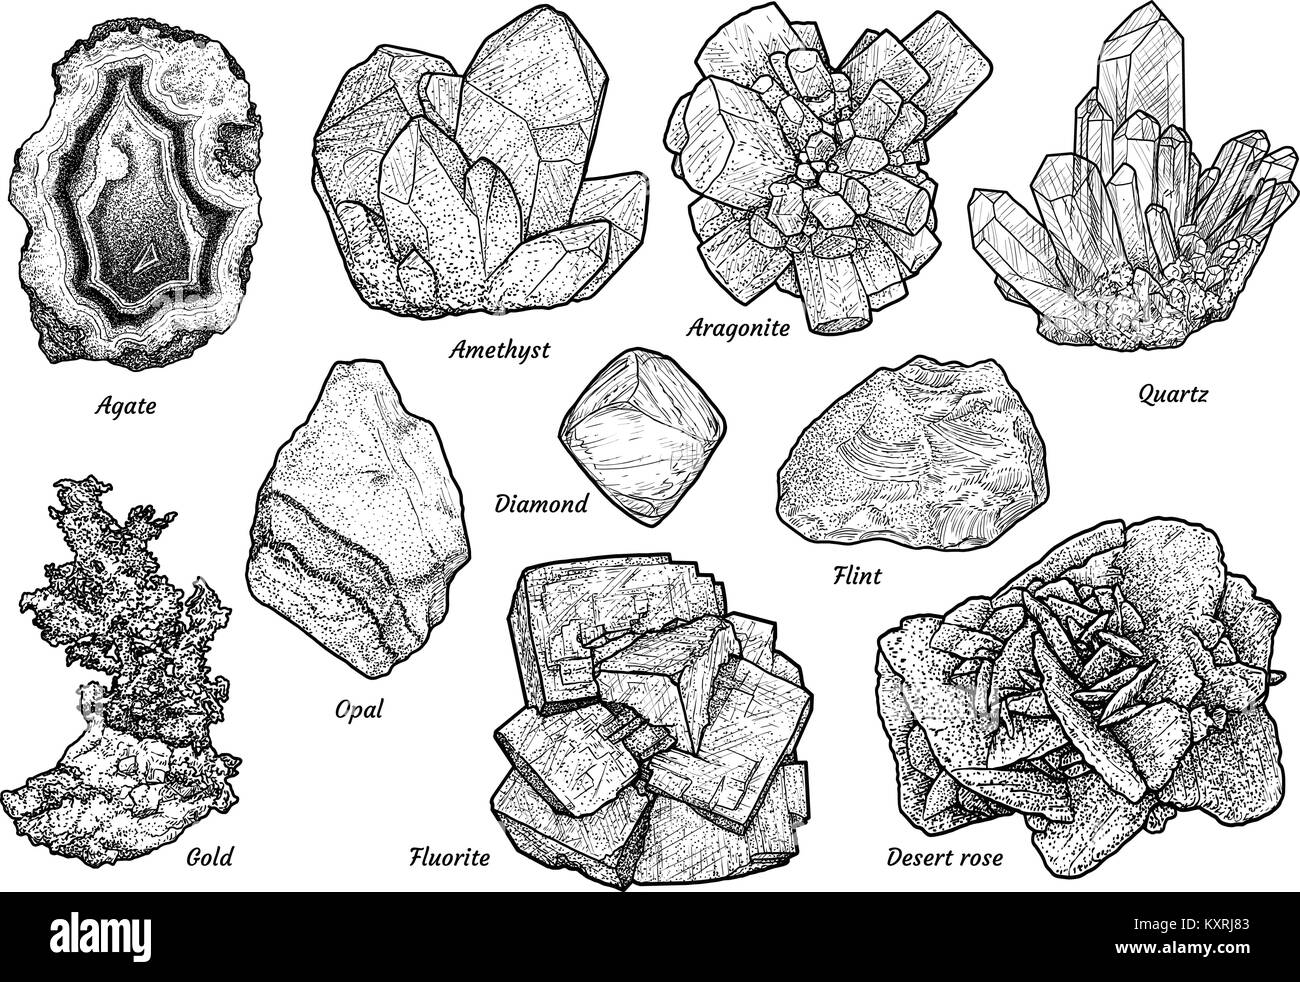 Mineral collection illustration, drawing, engraving, ink, line art,   vector - Stock Image